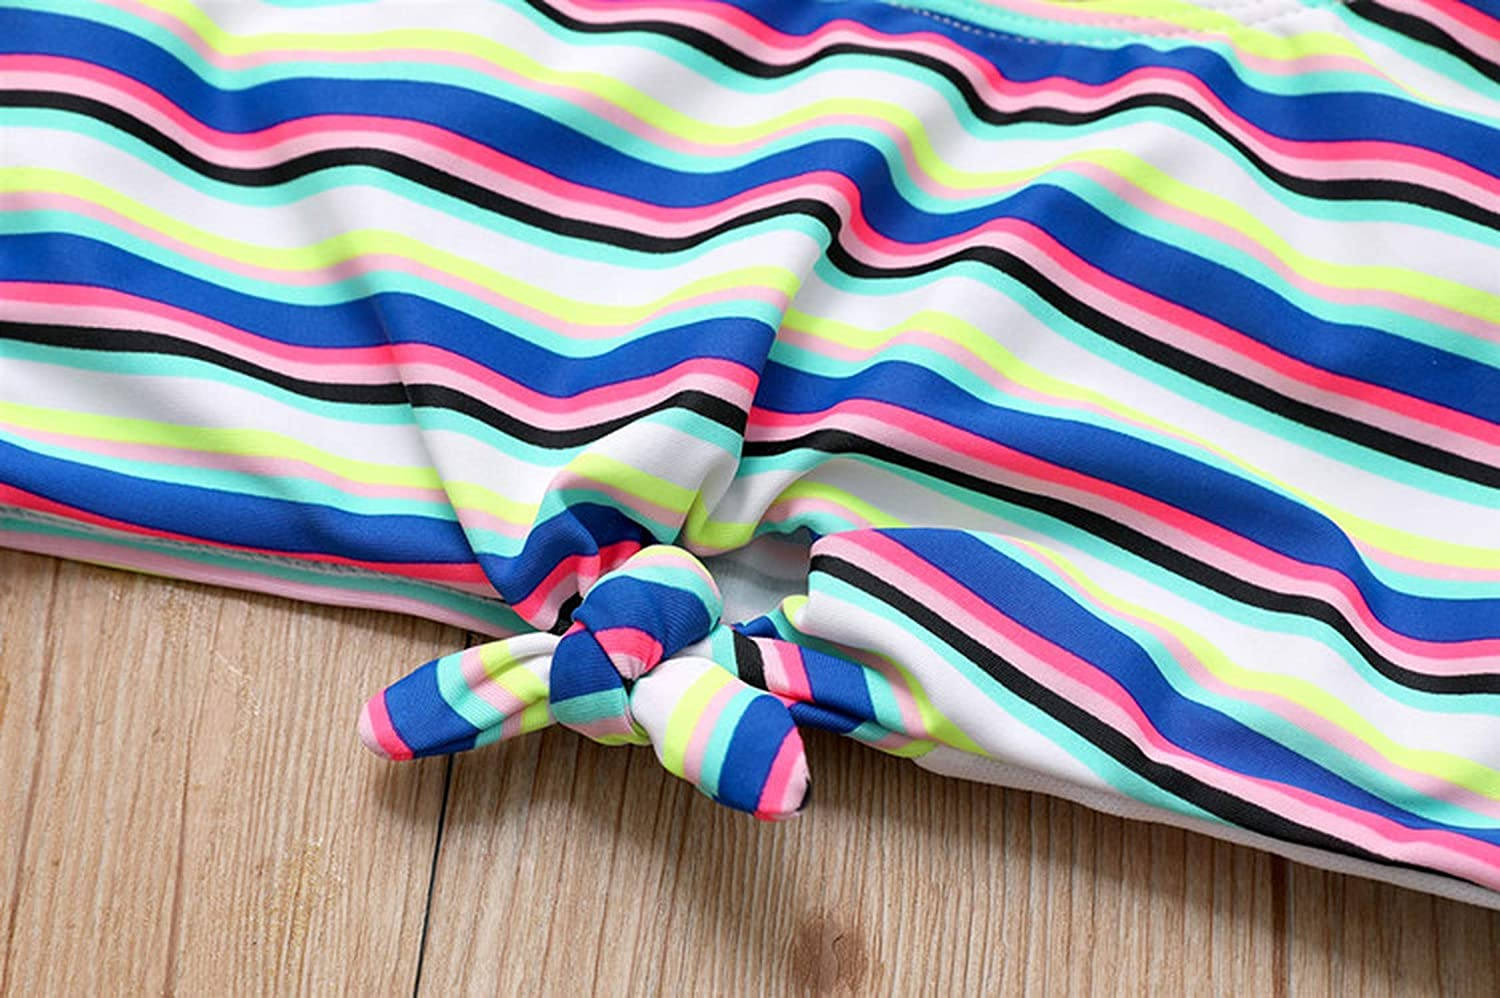 madows girls swimwear Swimsuit Two Pieces Blue Striped 6 16 Years Childrens Two Piece Swimming G1 CZ957